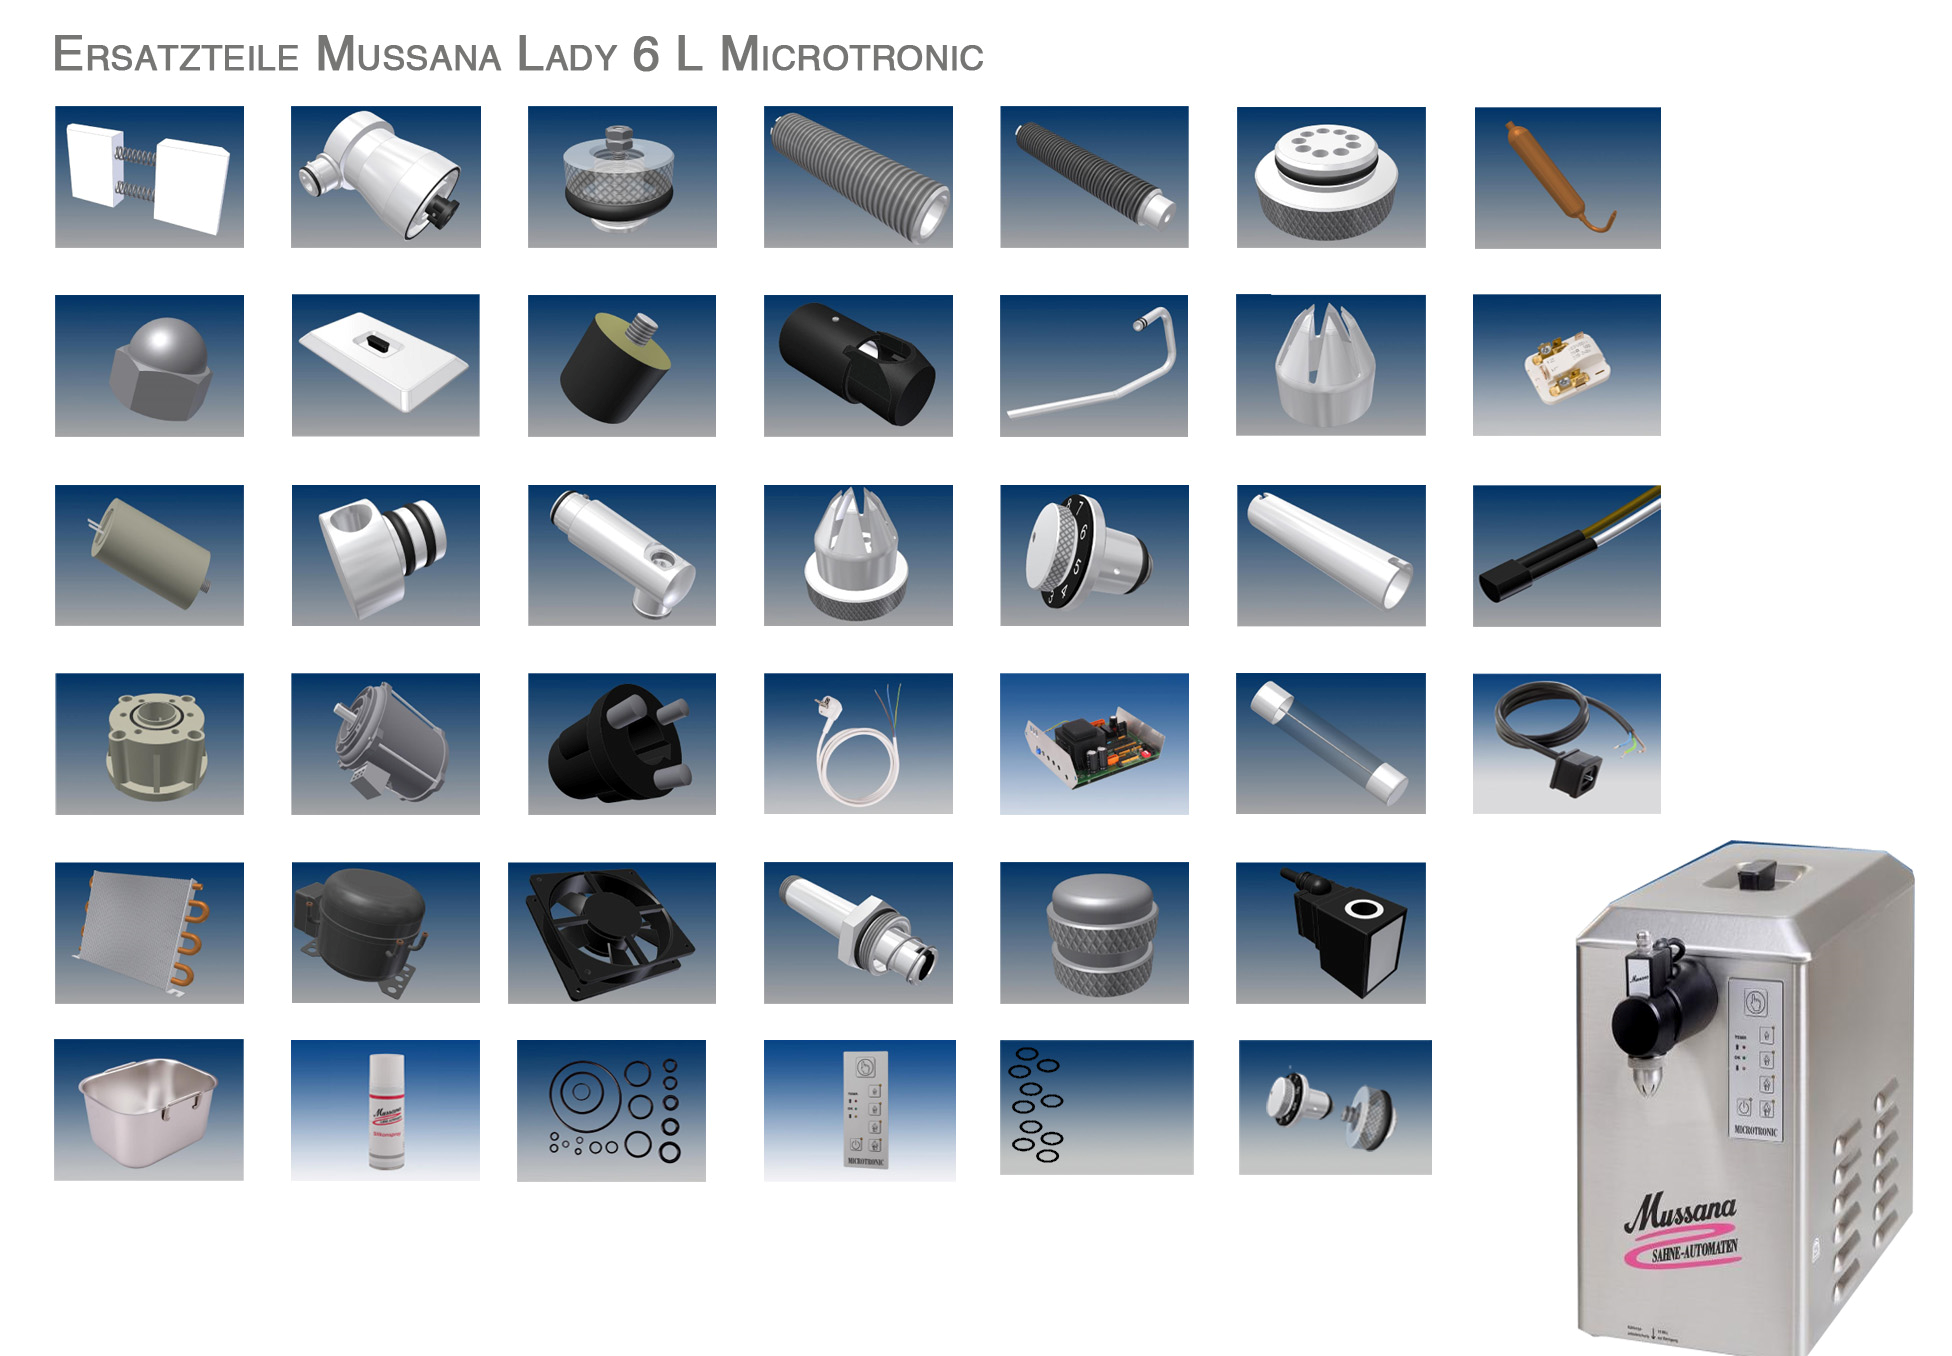 MUSSANA_Lady6LMicrotronic